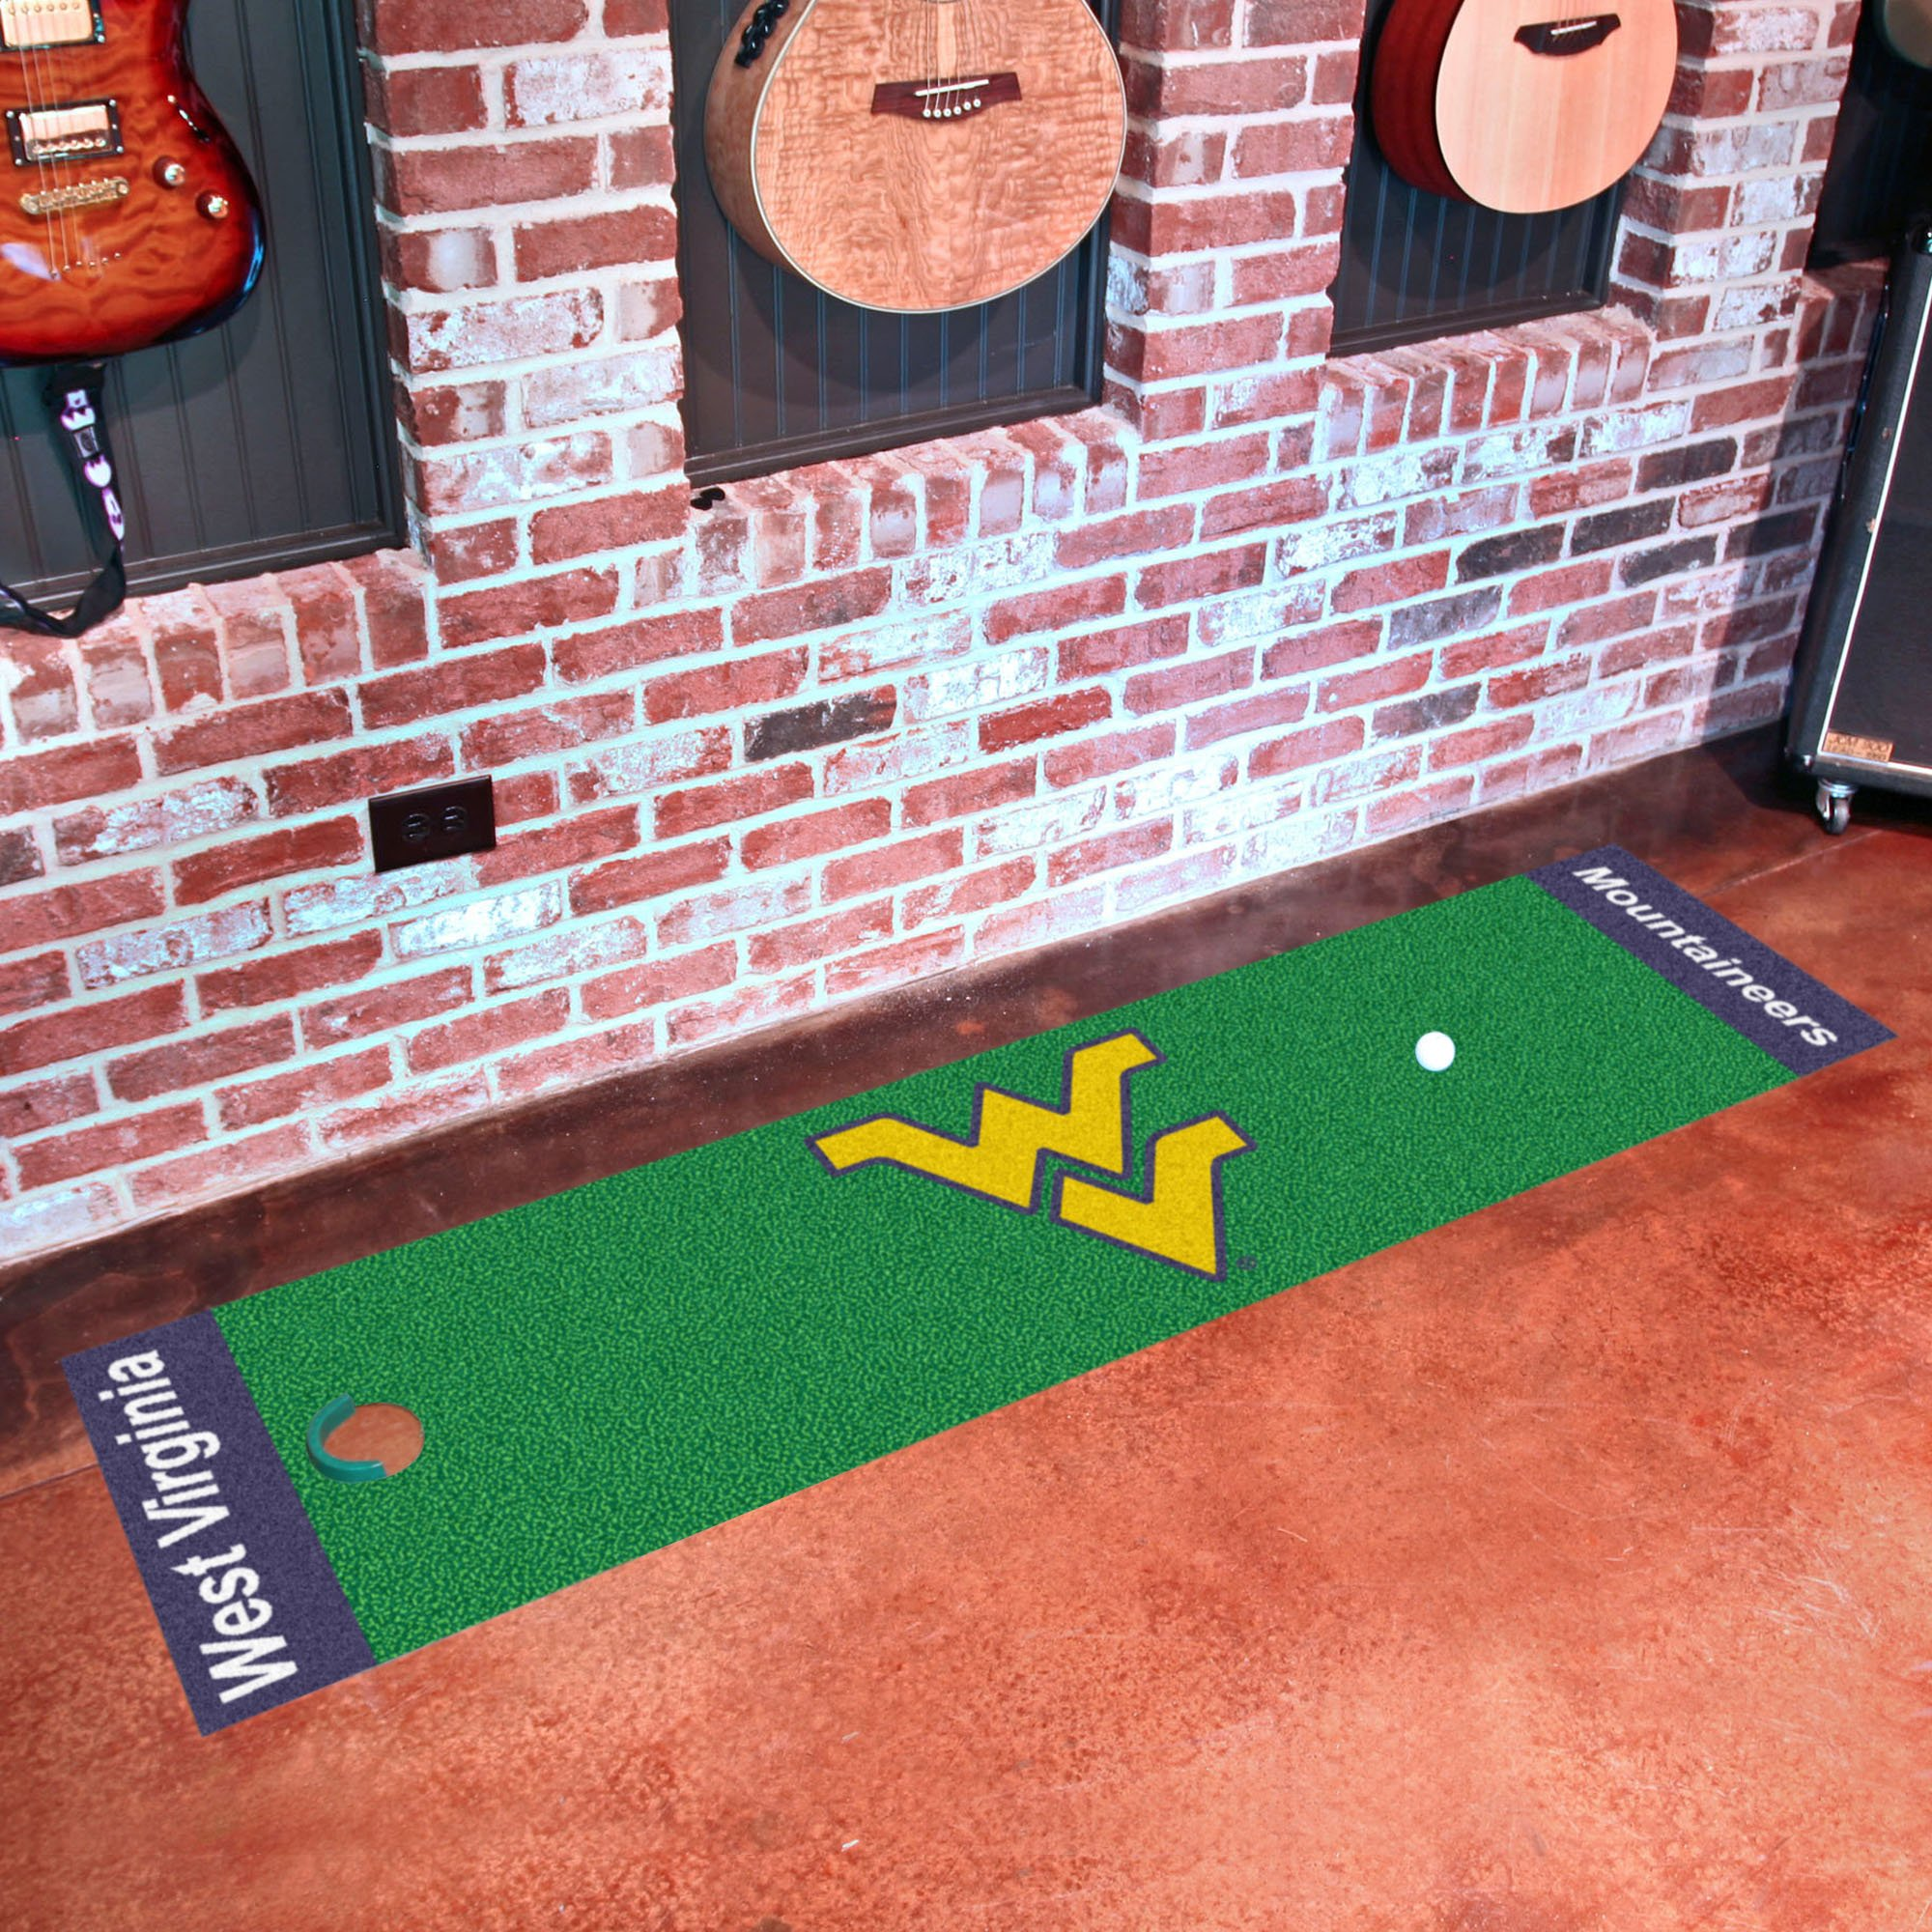 NCAA West Virginia University Mountaineers Putting Green Mat Golf Accessory by Unknown (Image #2)